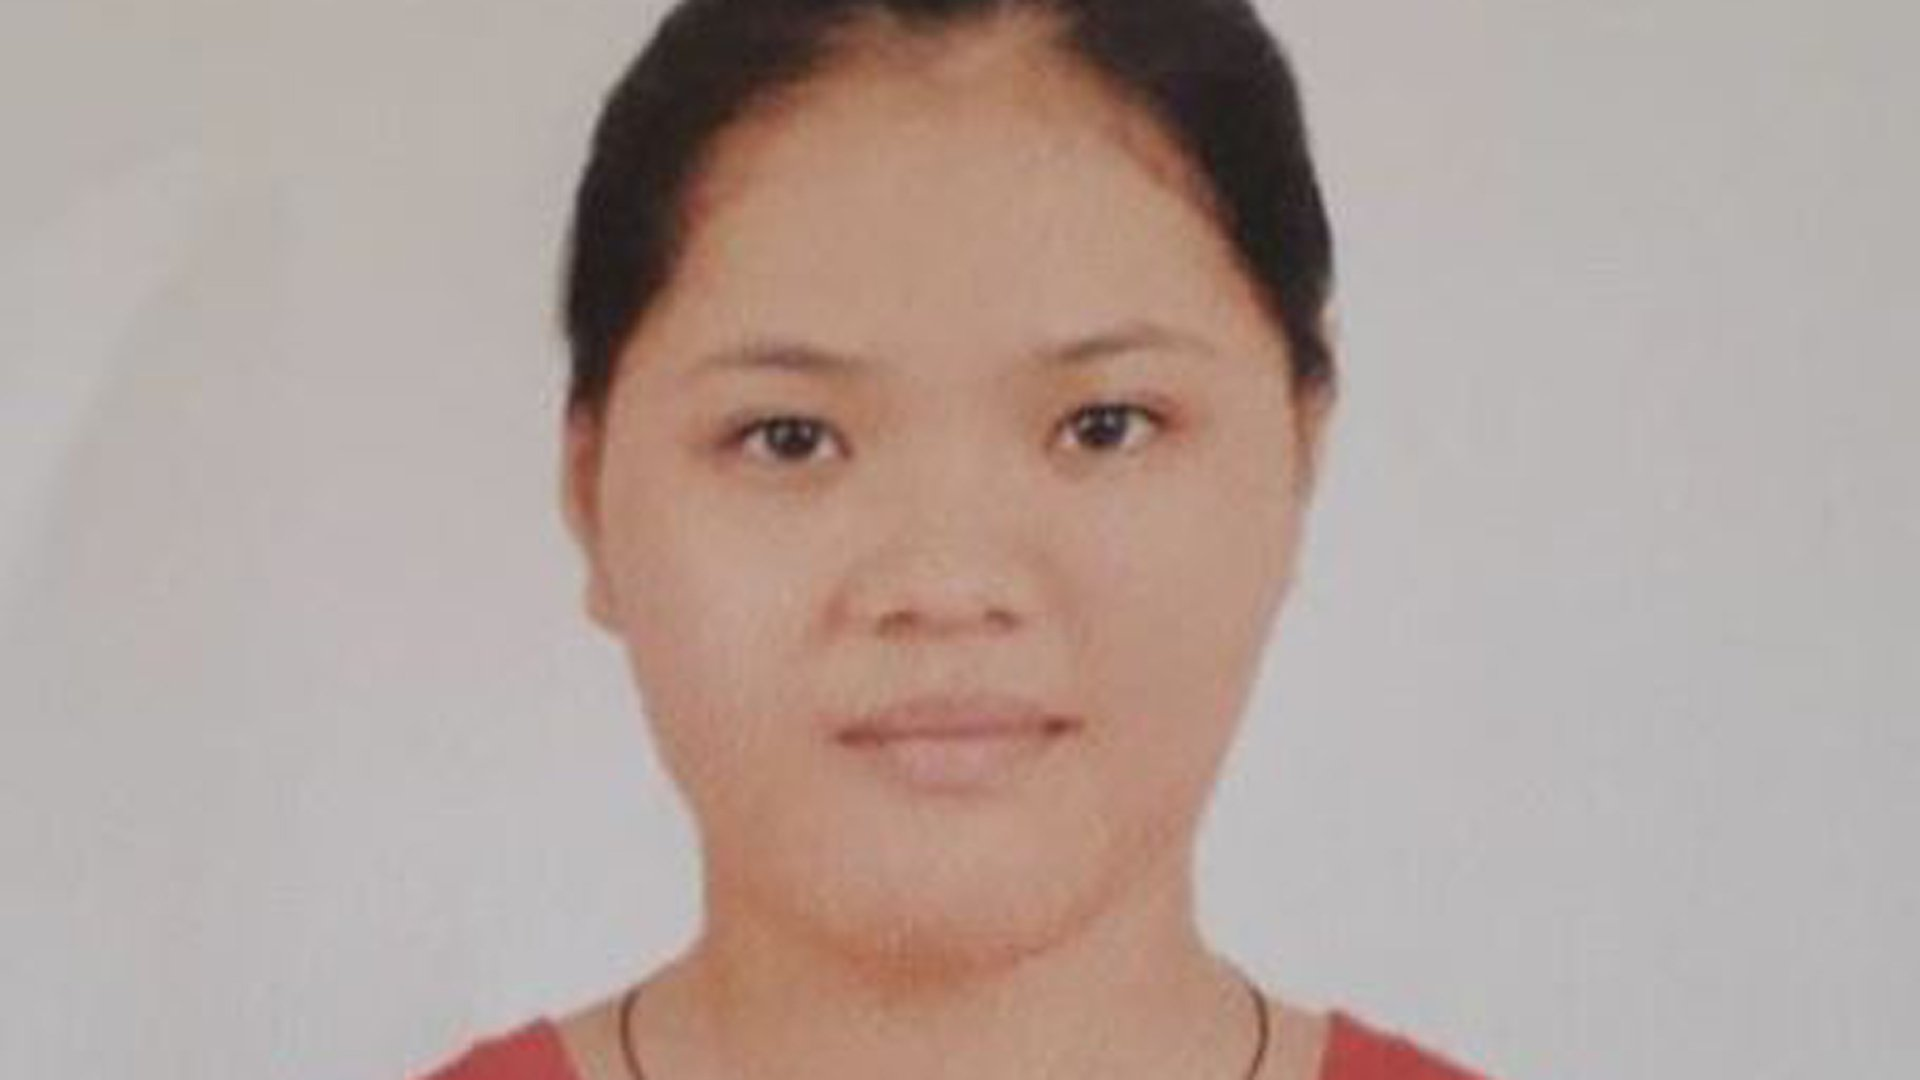 Yuping Guo is shown in a photo released by the San Bernardino County Sheriff's Department on Jan. 21, 2020.